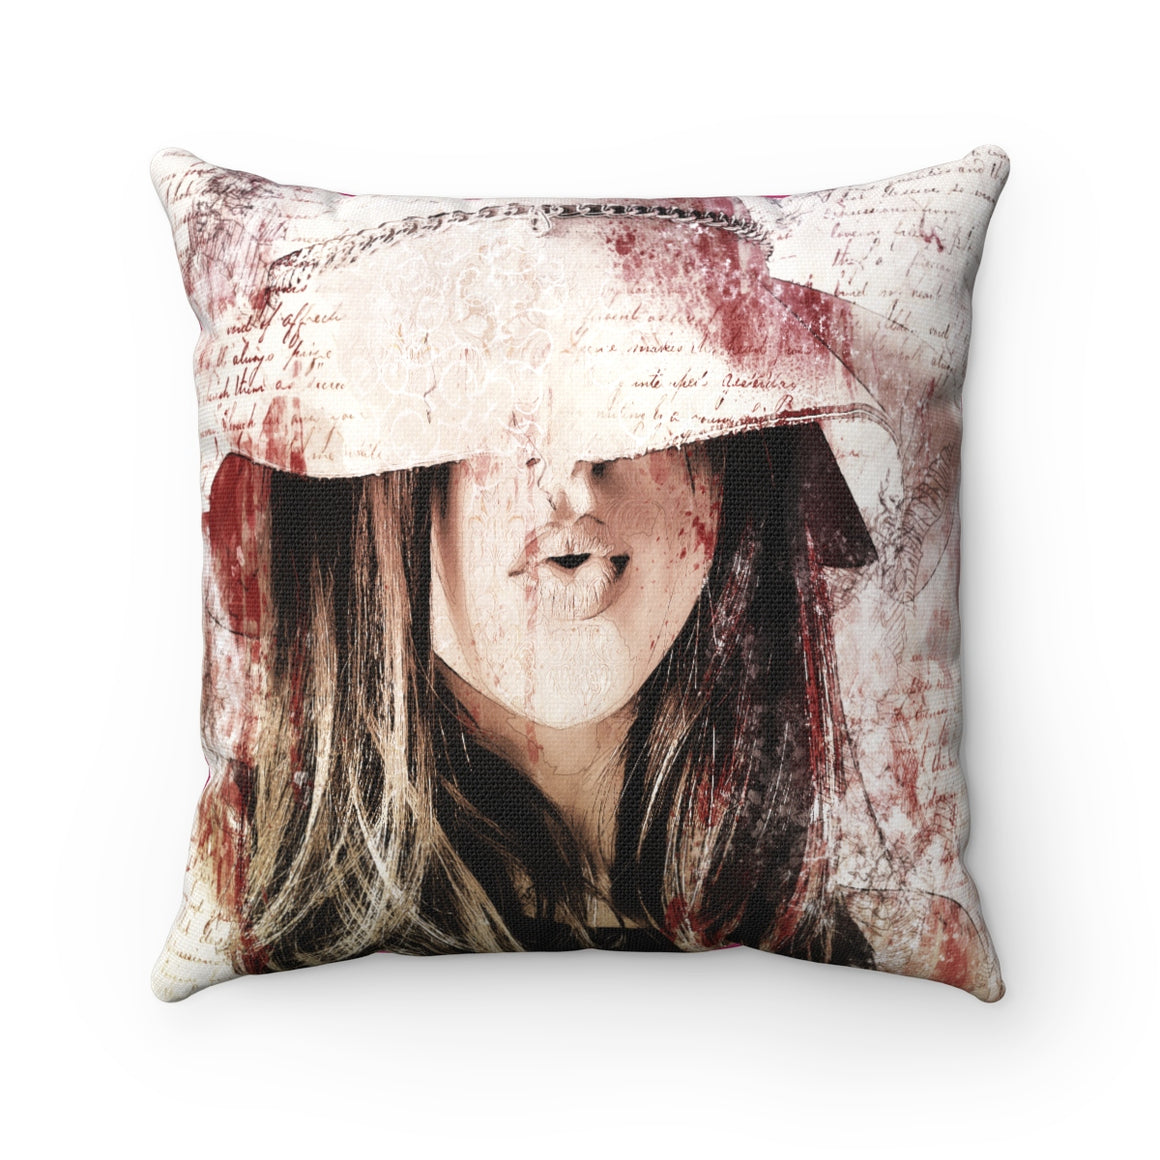 My Fabulous Style High Fashion Sweet Lady Throw Pillow-Home Decor Throw Pillow for Women